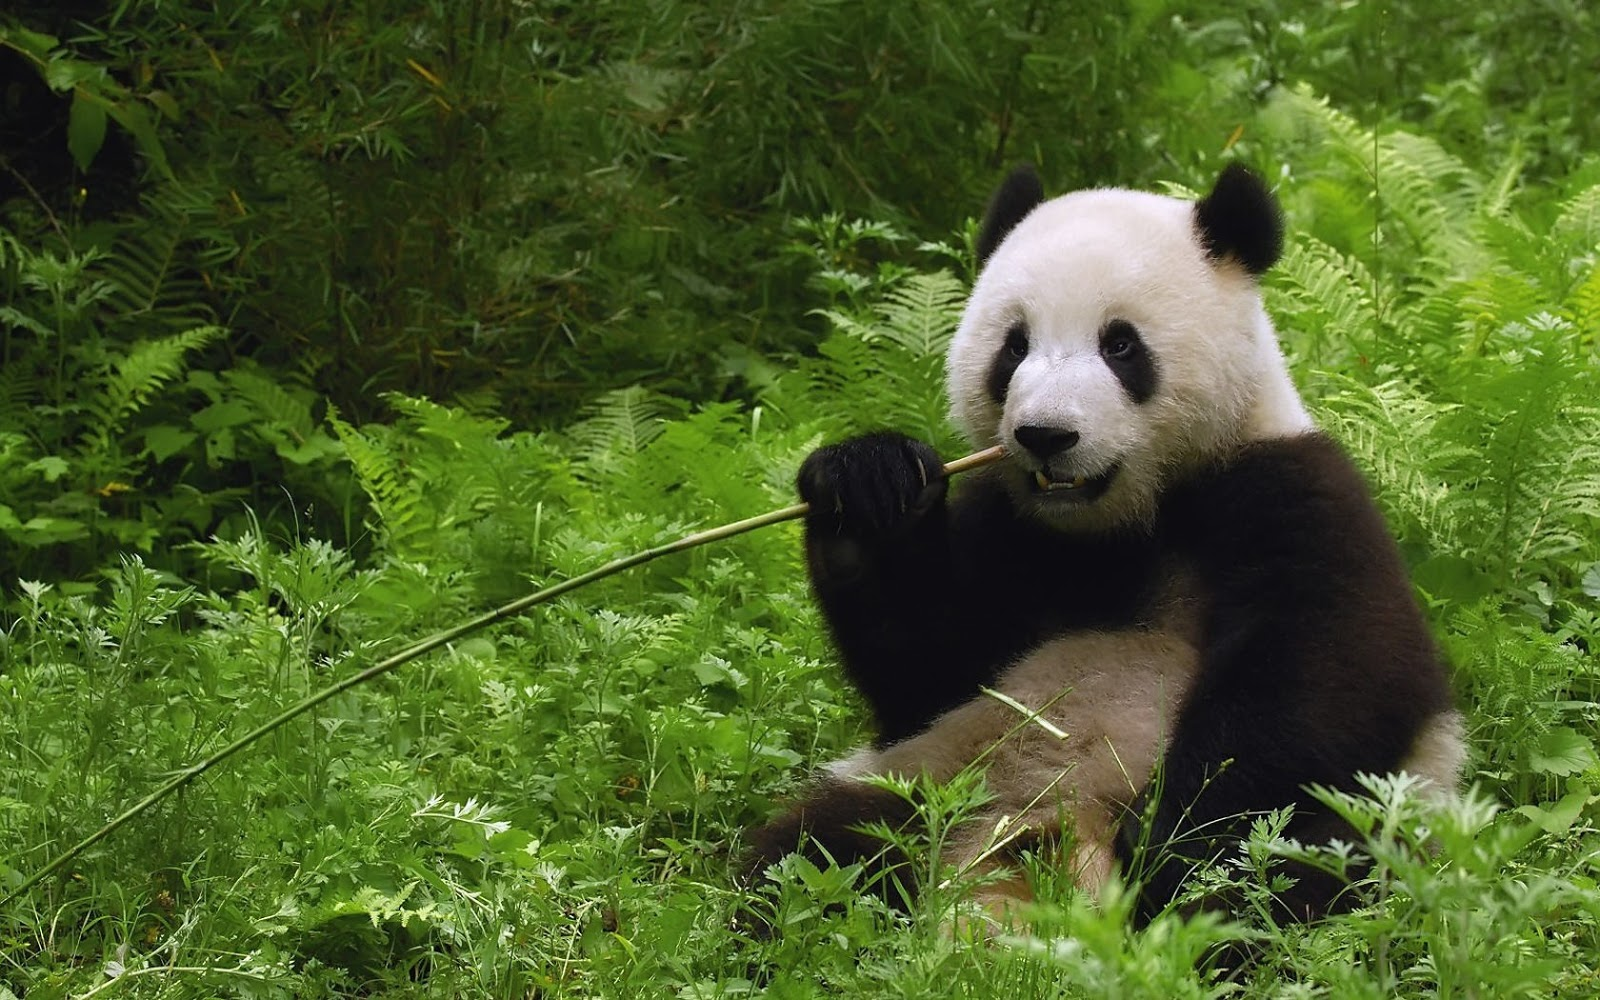 Central Wallpaper: Cute Panda Bears HD Wallpapers